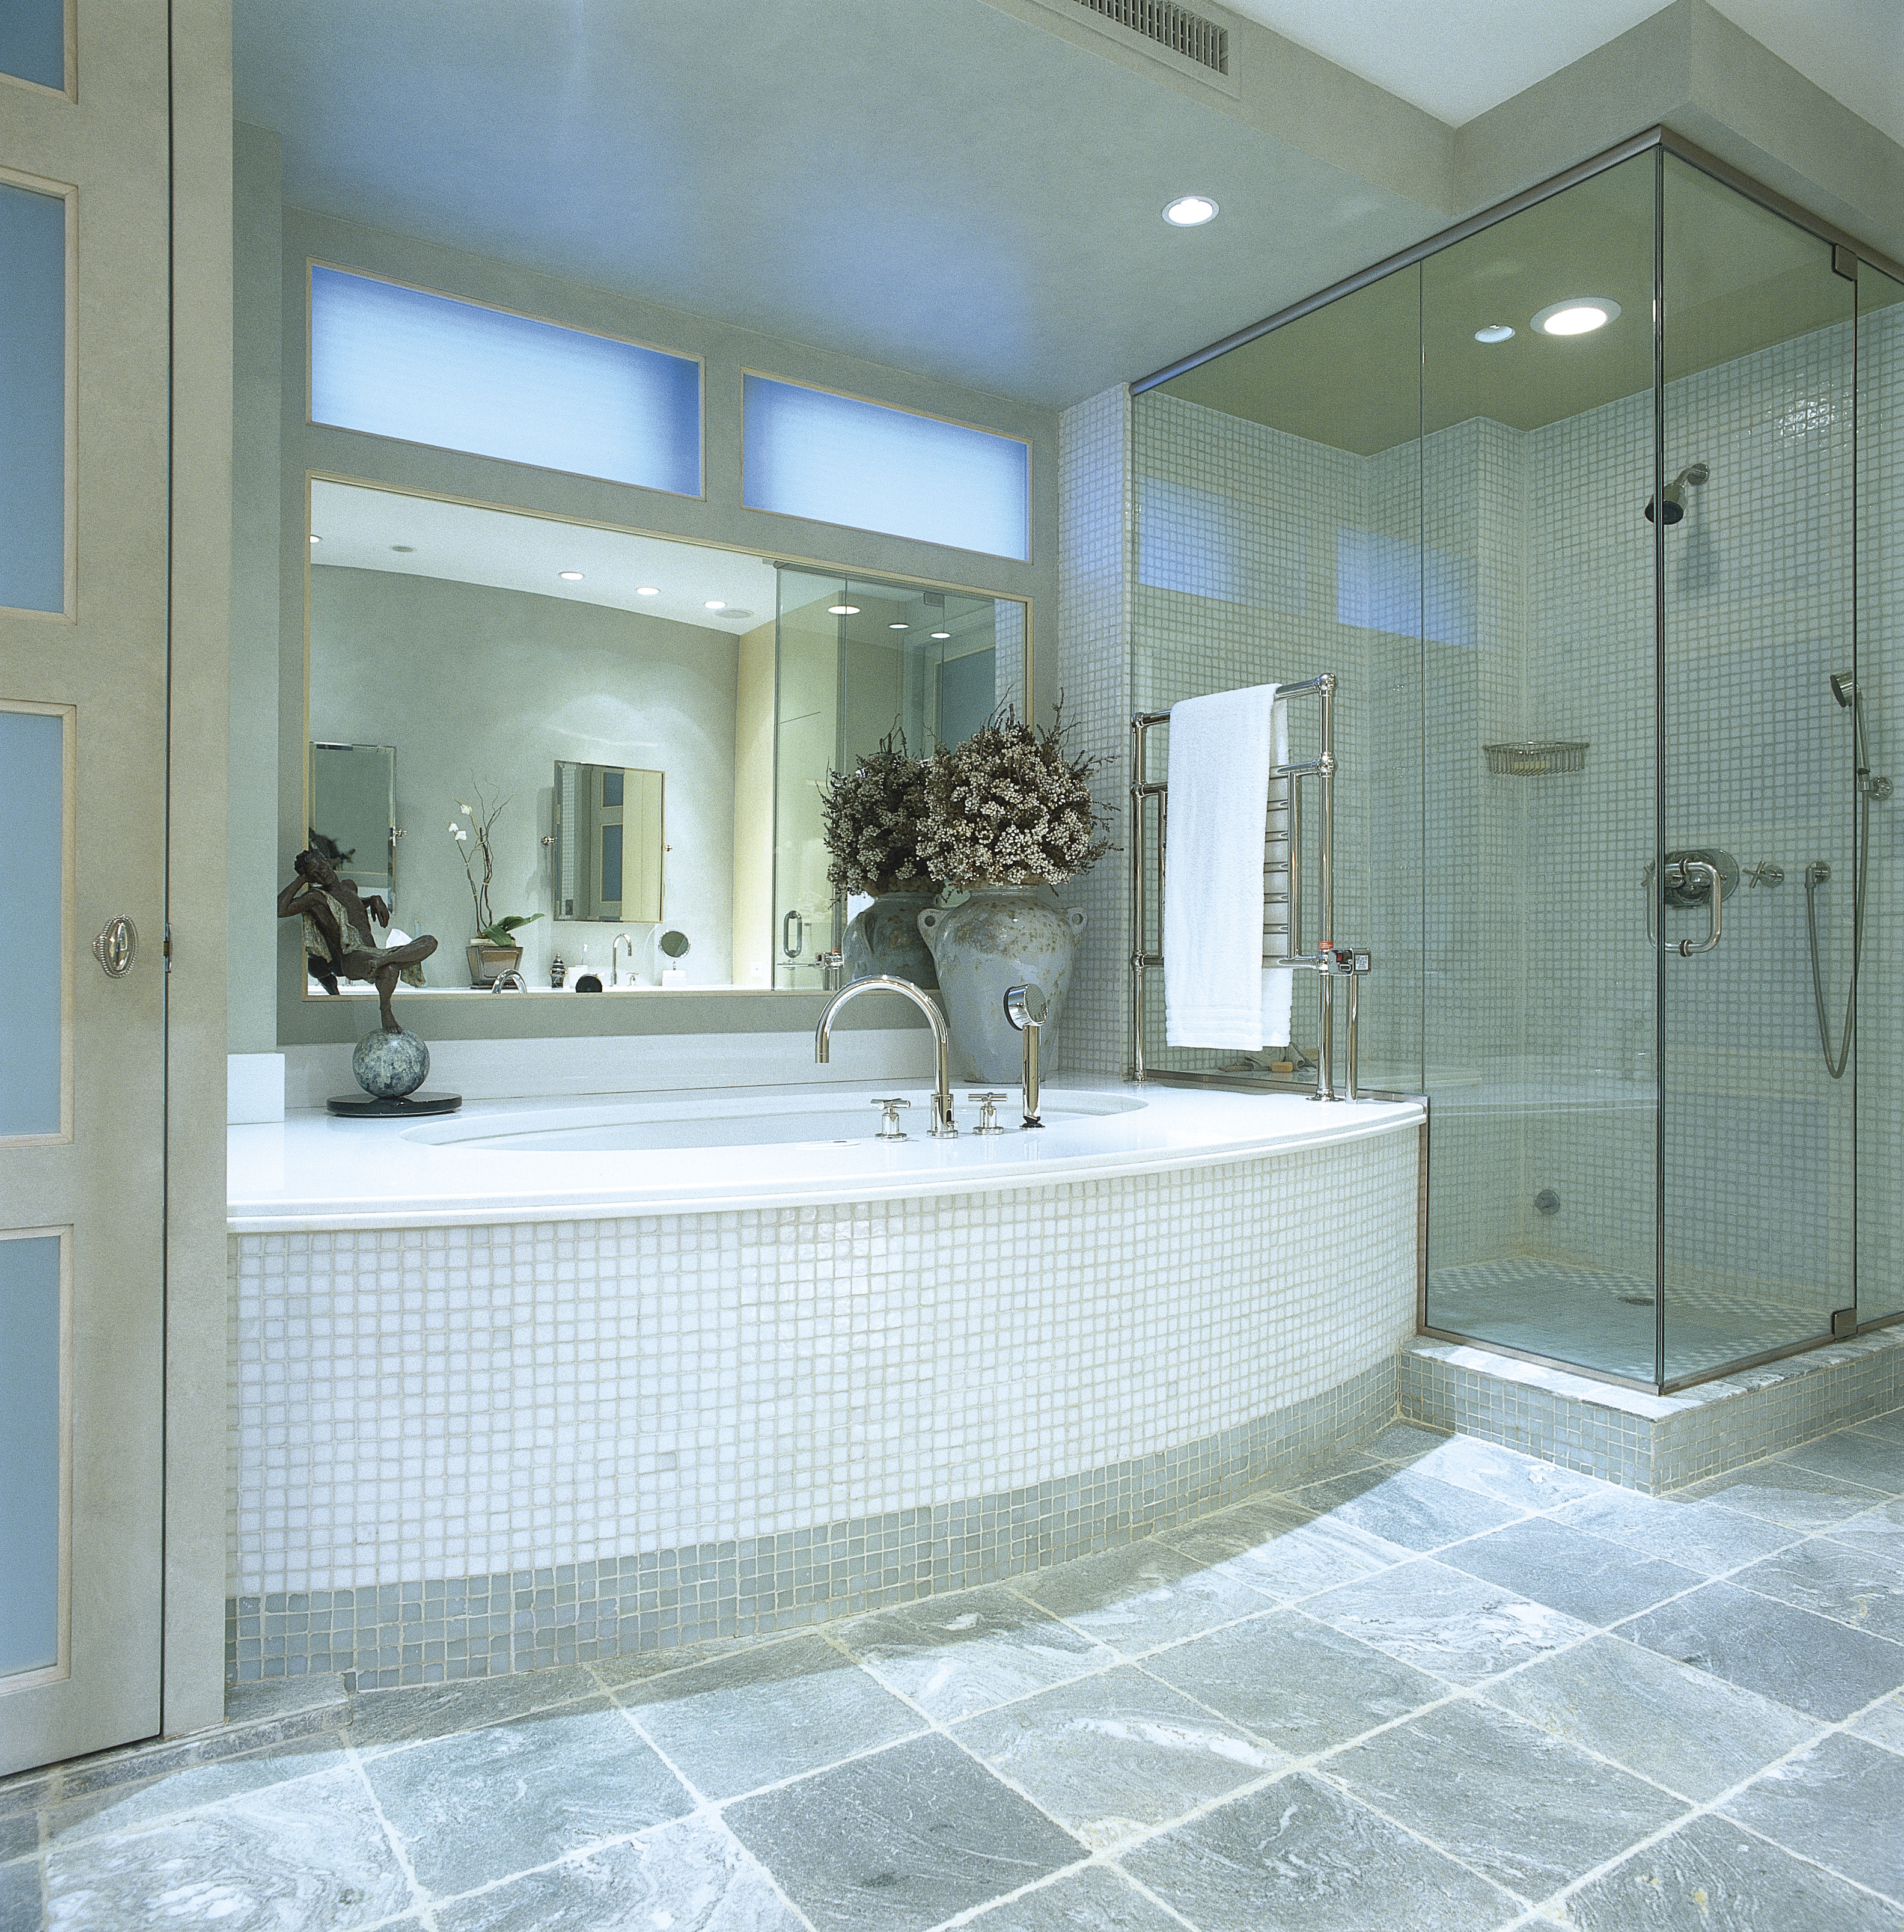 Tile - Floor Tiles - Bathroom Tiles | Westside Tile and Stone